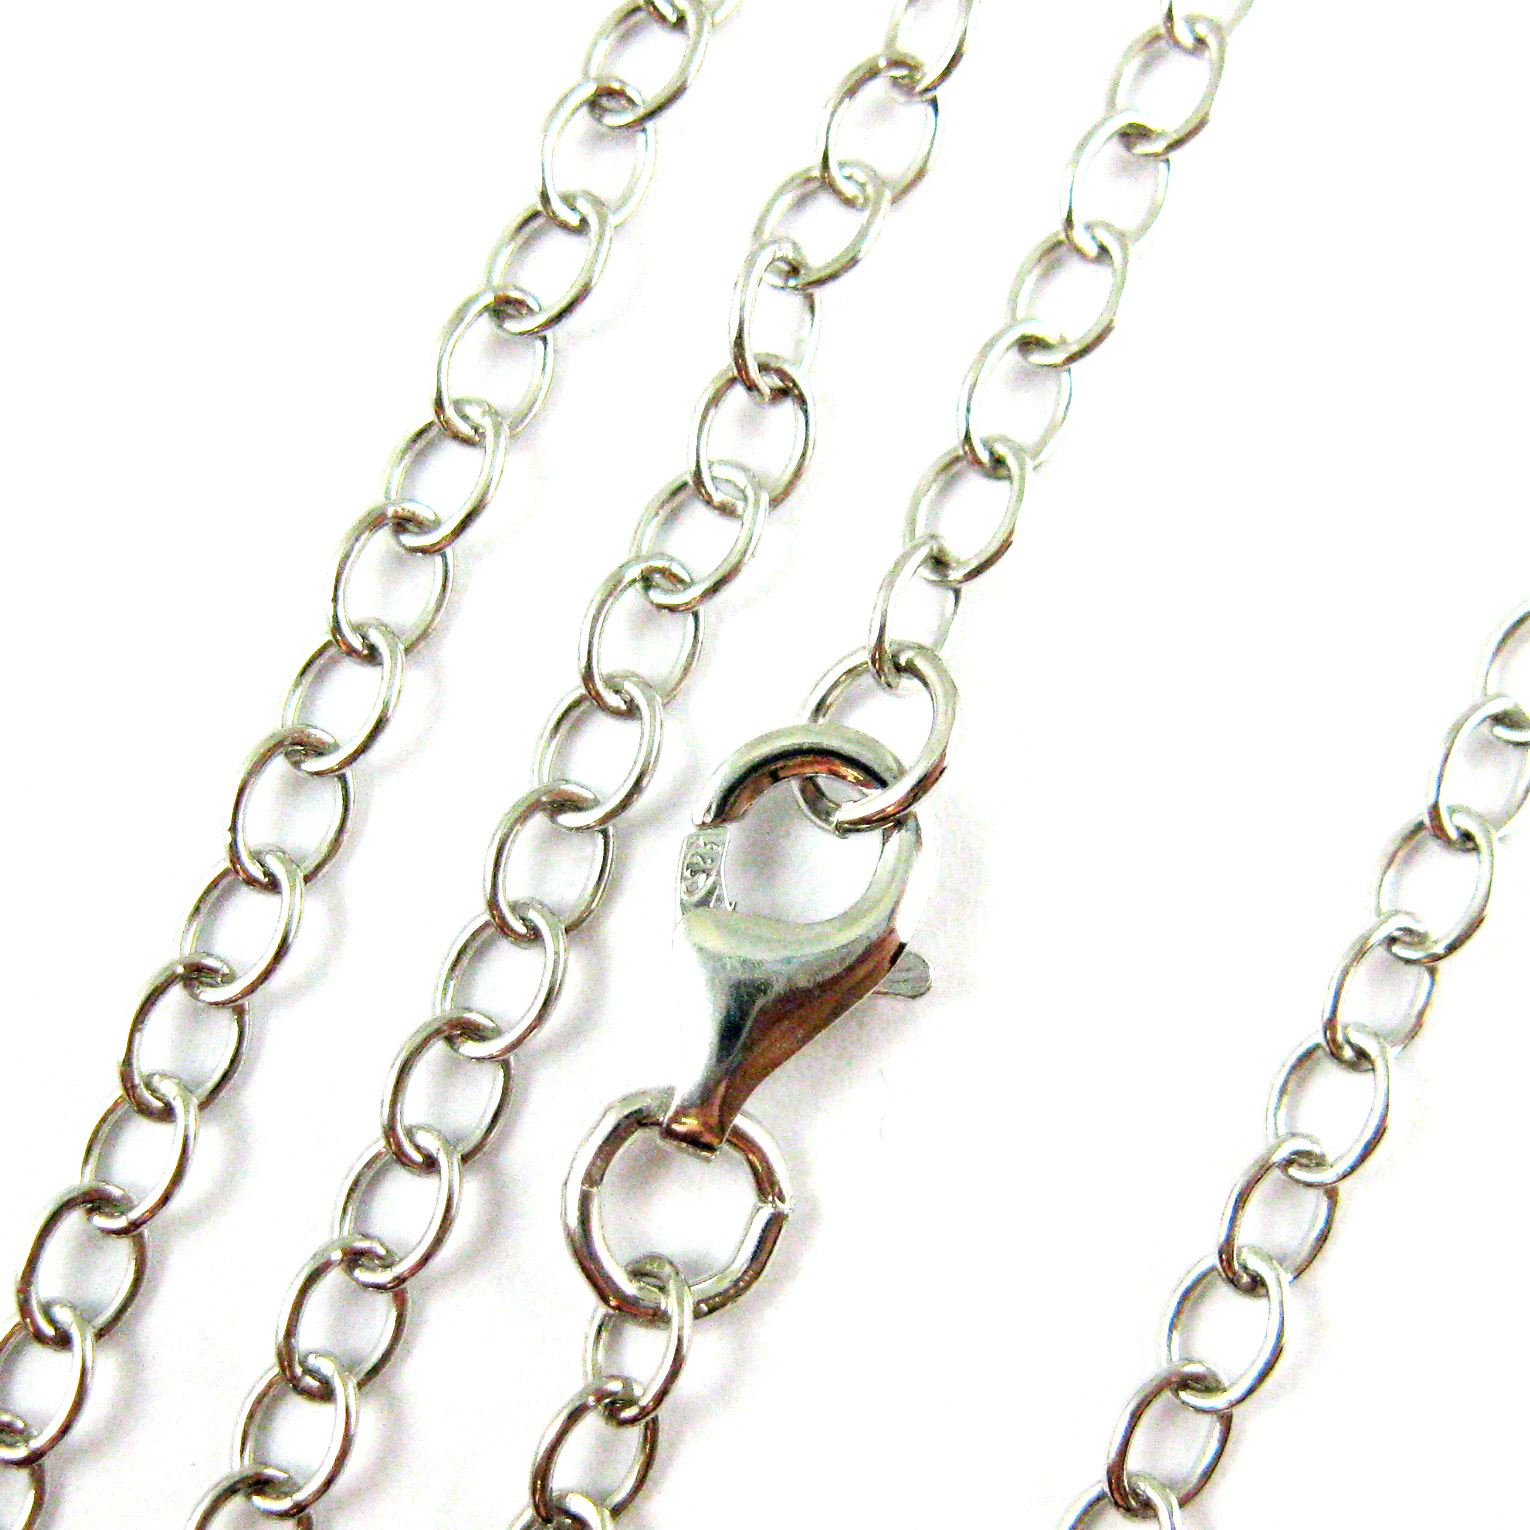 Rhodium Plated Over Of Sterling Silver Chain Necklace – Rhodium Bracelet,  Anklet – 4Mm Cable Chain Necklace – 4Mm Strong Cable Chain  All Sizes With Regard To Most Recently Released Classic Cable Chain Necklaces (View 22 of 25)